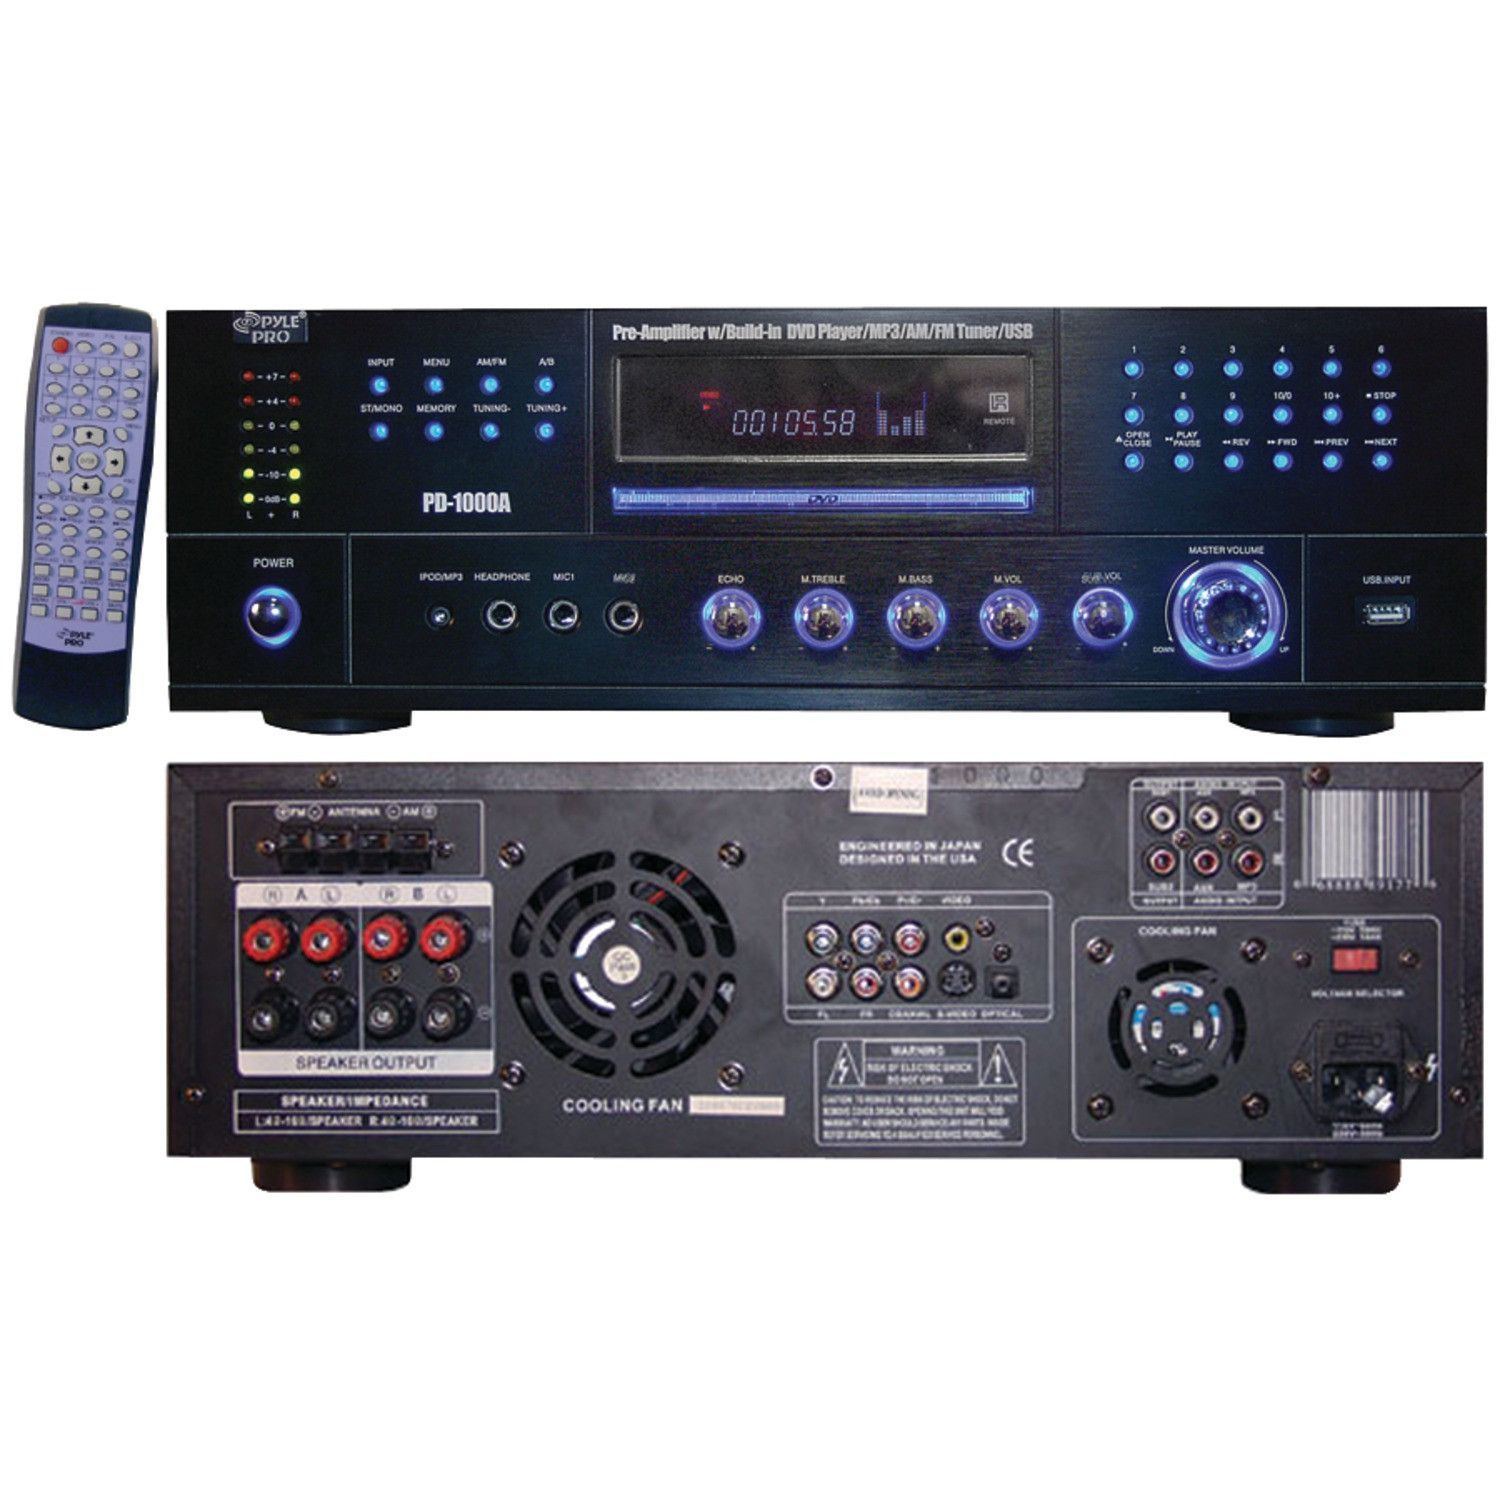 Pyle Home 1000 Watt Am And Fm Receiver With Built In Dvd Dvd